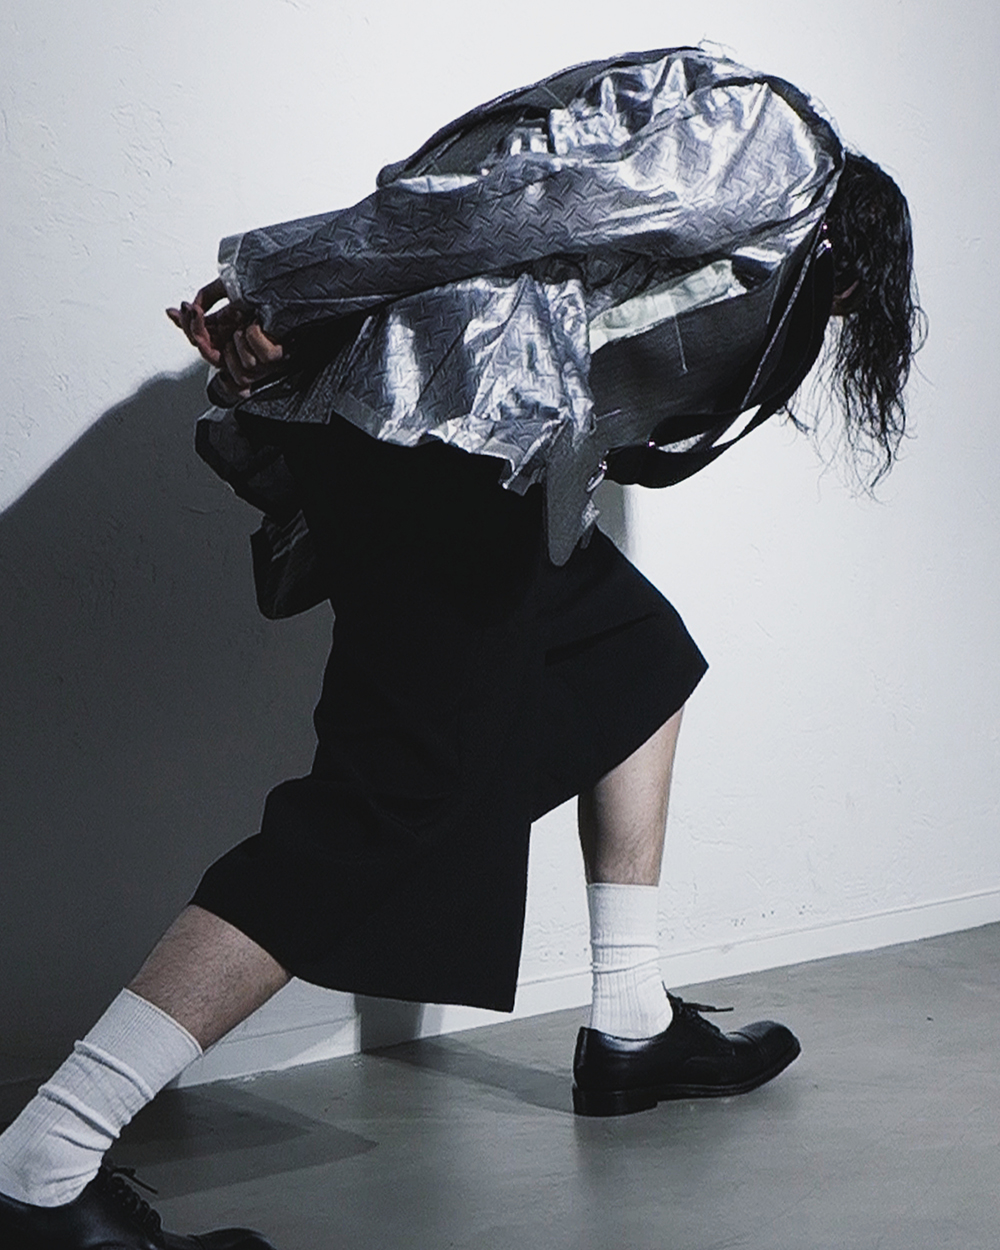 Ron Wan for JOYCE Group Hong Kong Featuring Comme des Garcons